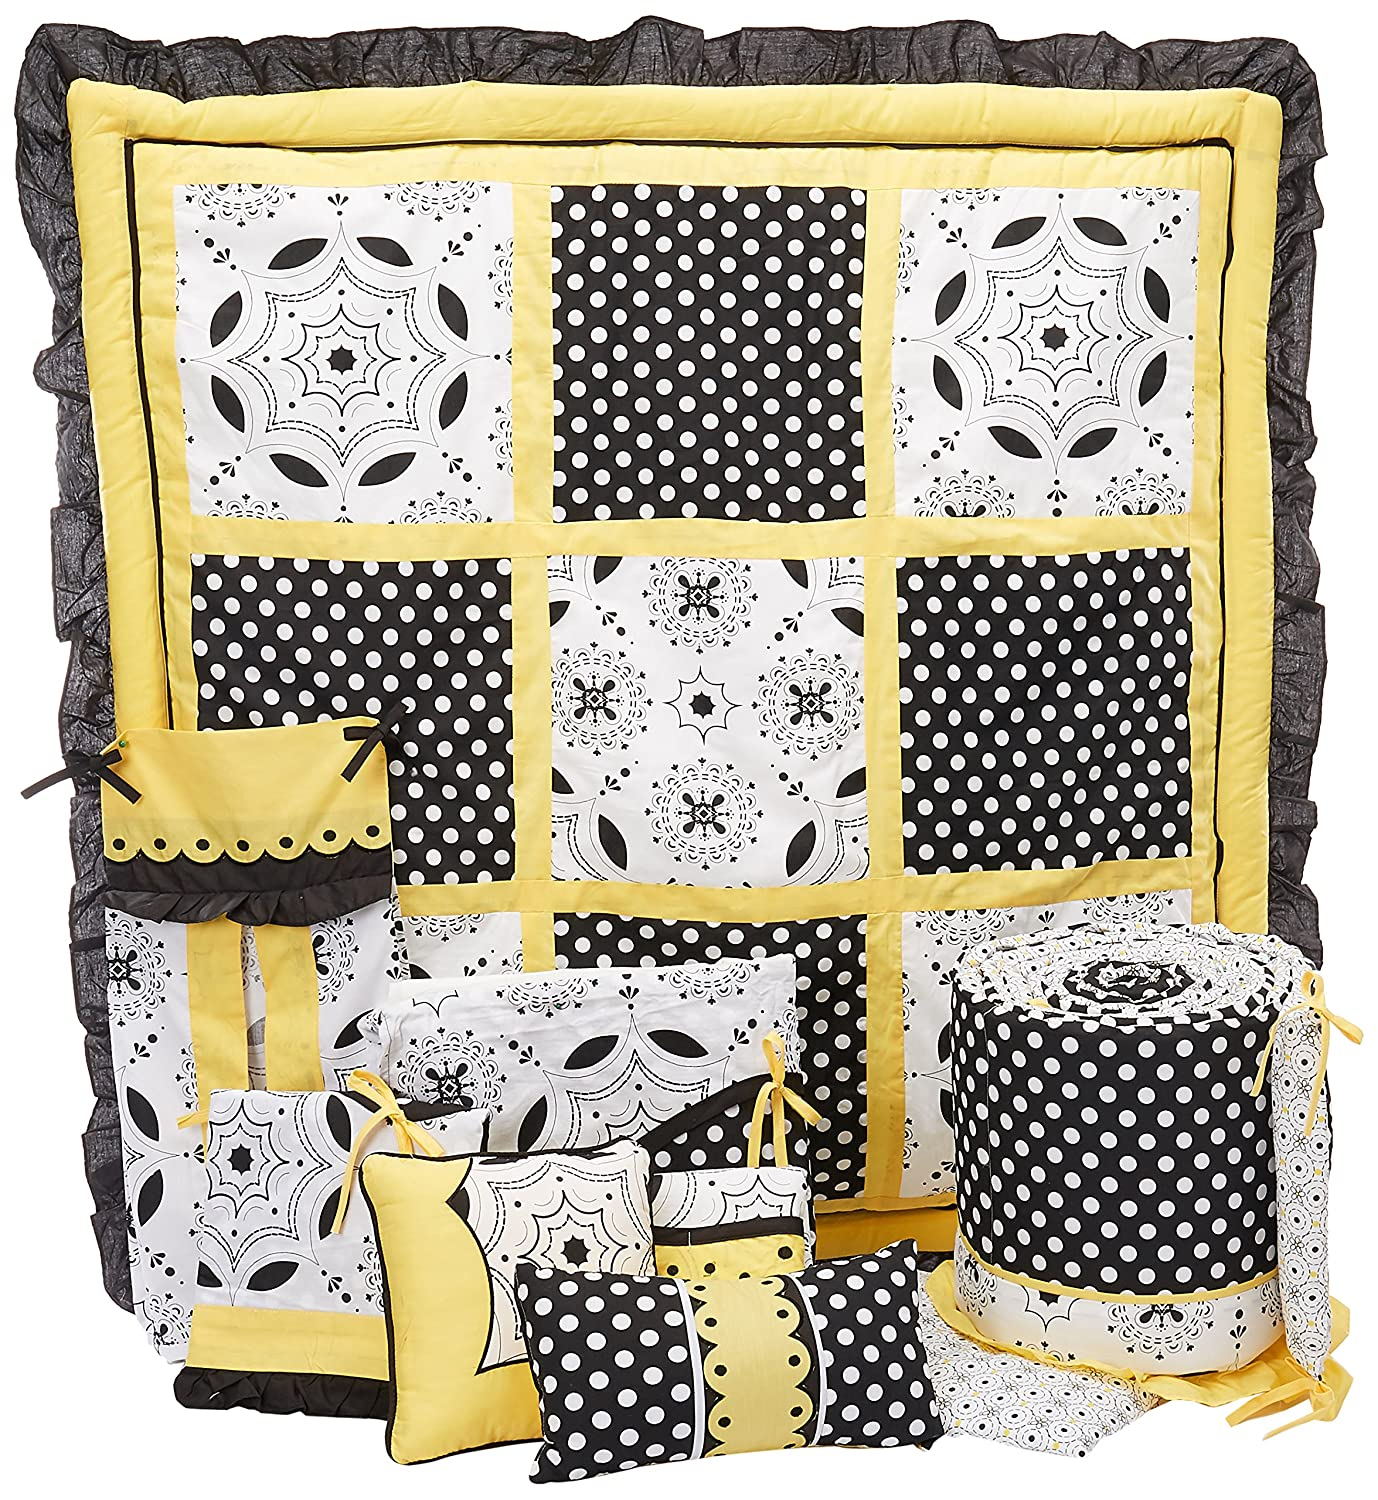 Leigh gender neutral 10pc owl baby crib bedding set grey yellow green - Dk Leigh Crib Nursery Bedding Set Elegant Girl Yellow 10 Piece Amazon Ca Baby